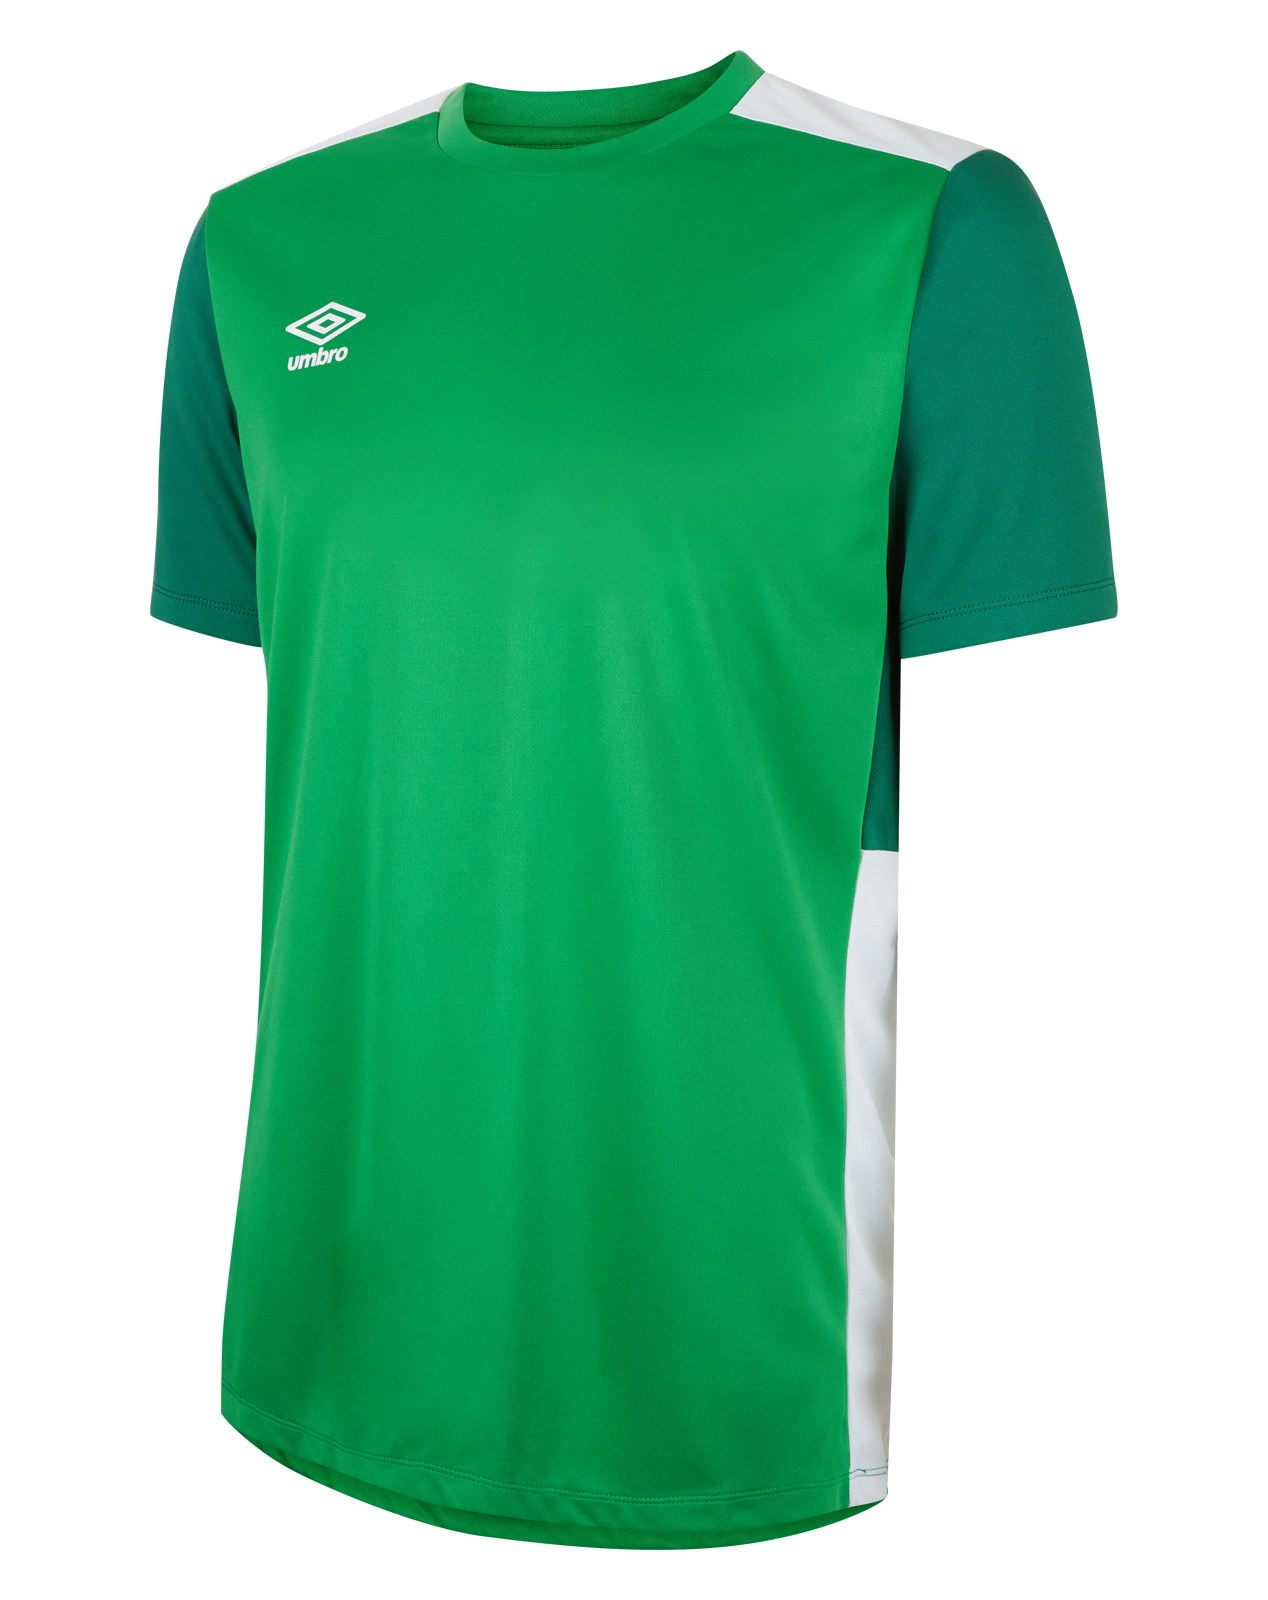 Umbro training poly jersey in emerald  with contrast darker green sleeve